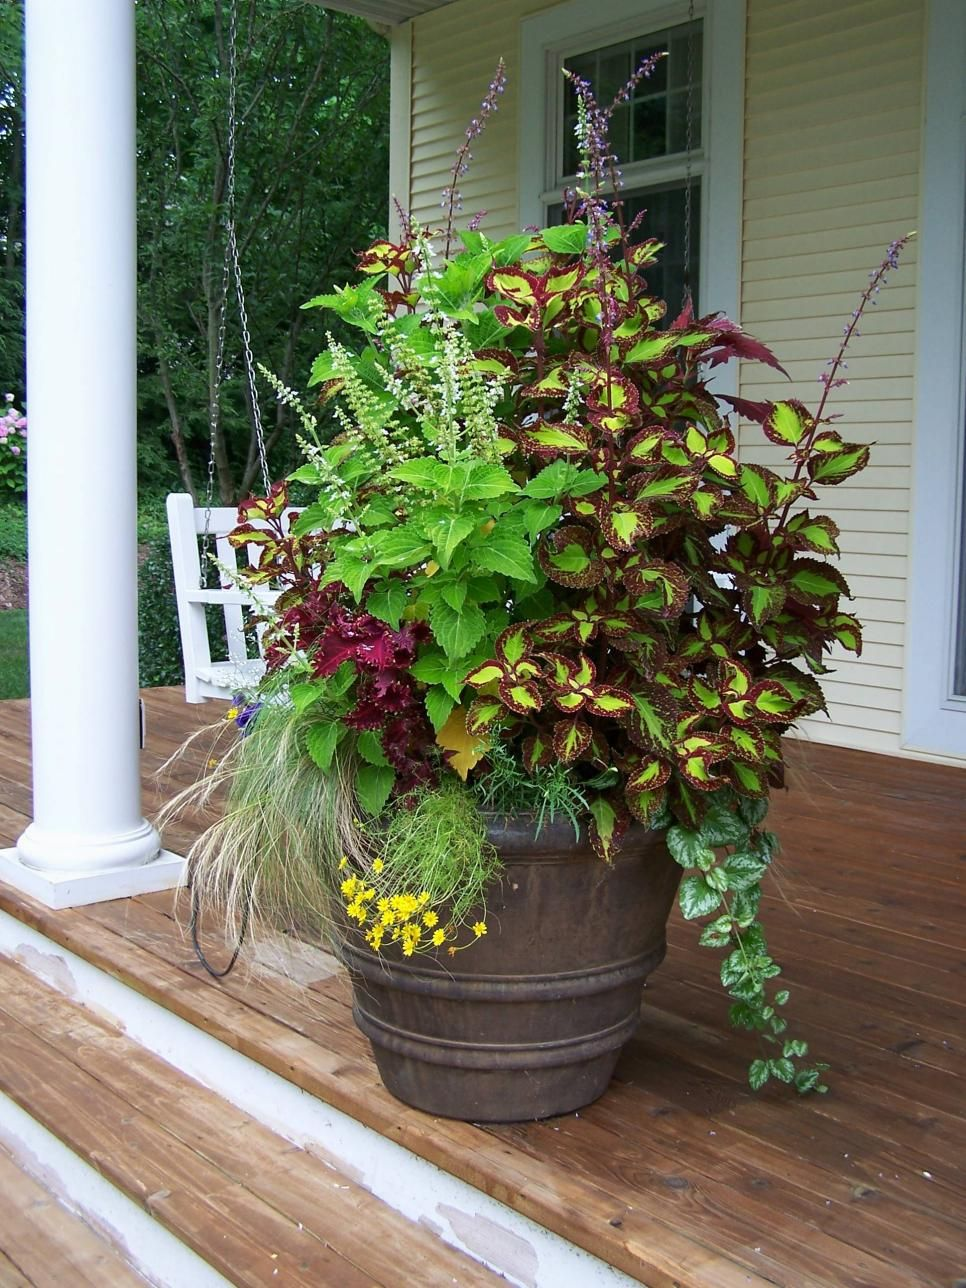 Several varieties of coleus Mexican feather grass